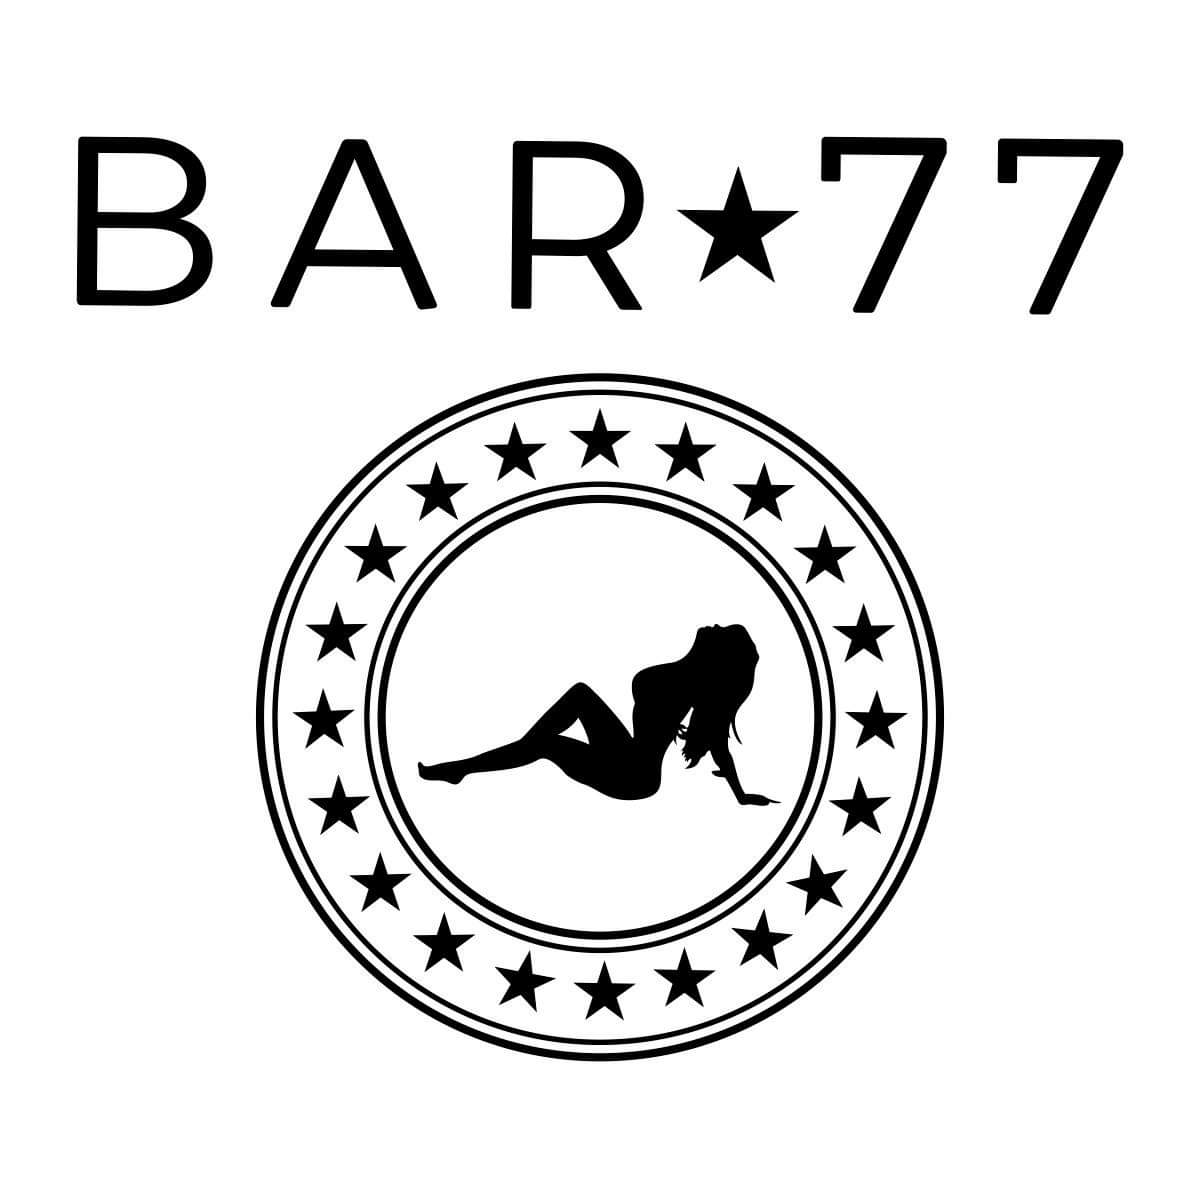 Commanditaire: Bar 77